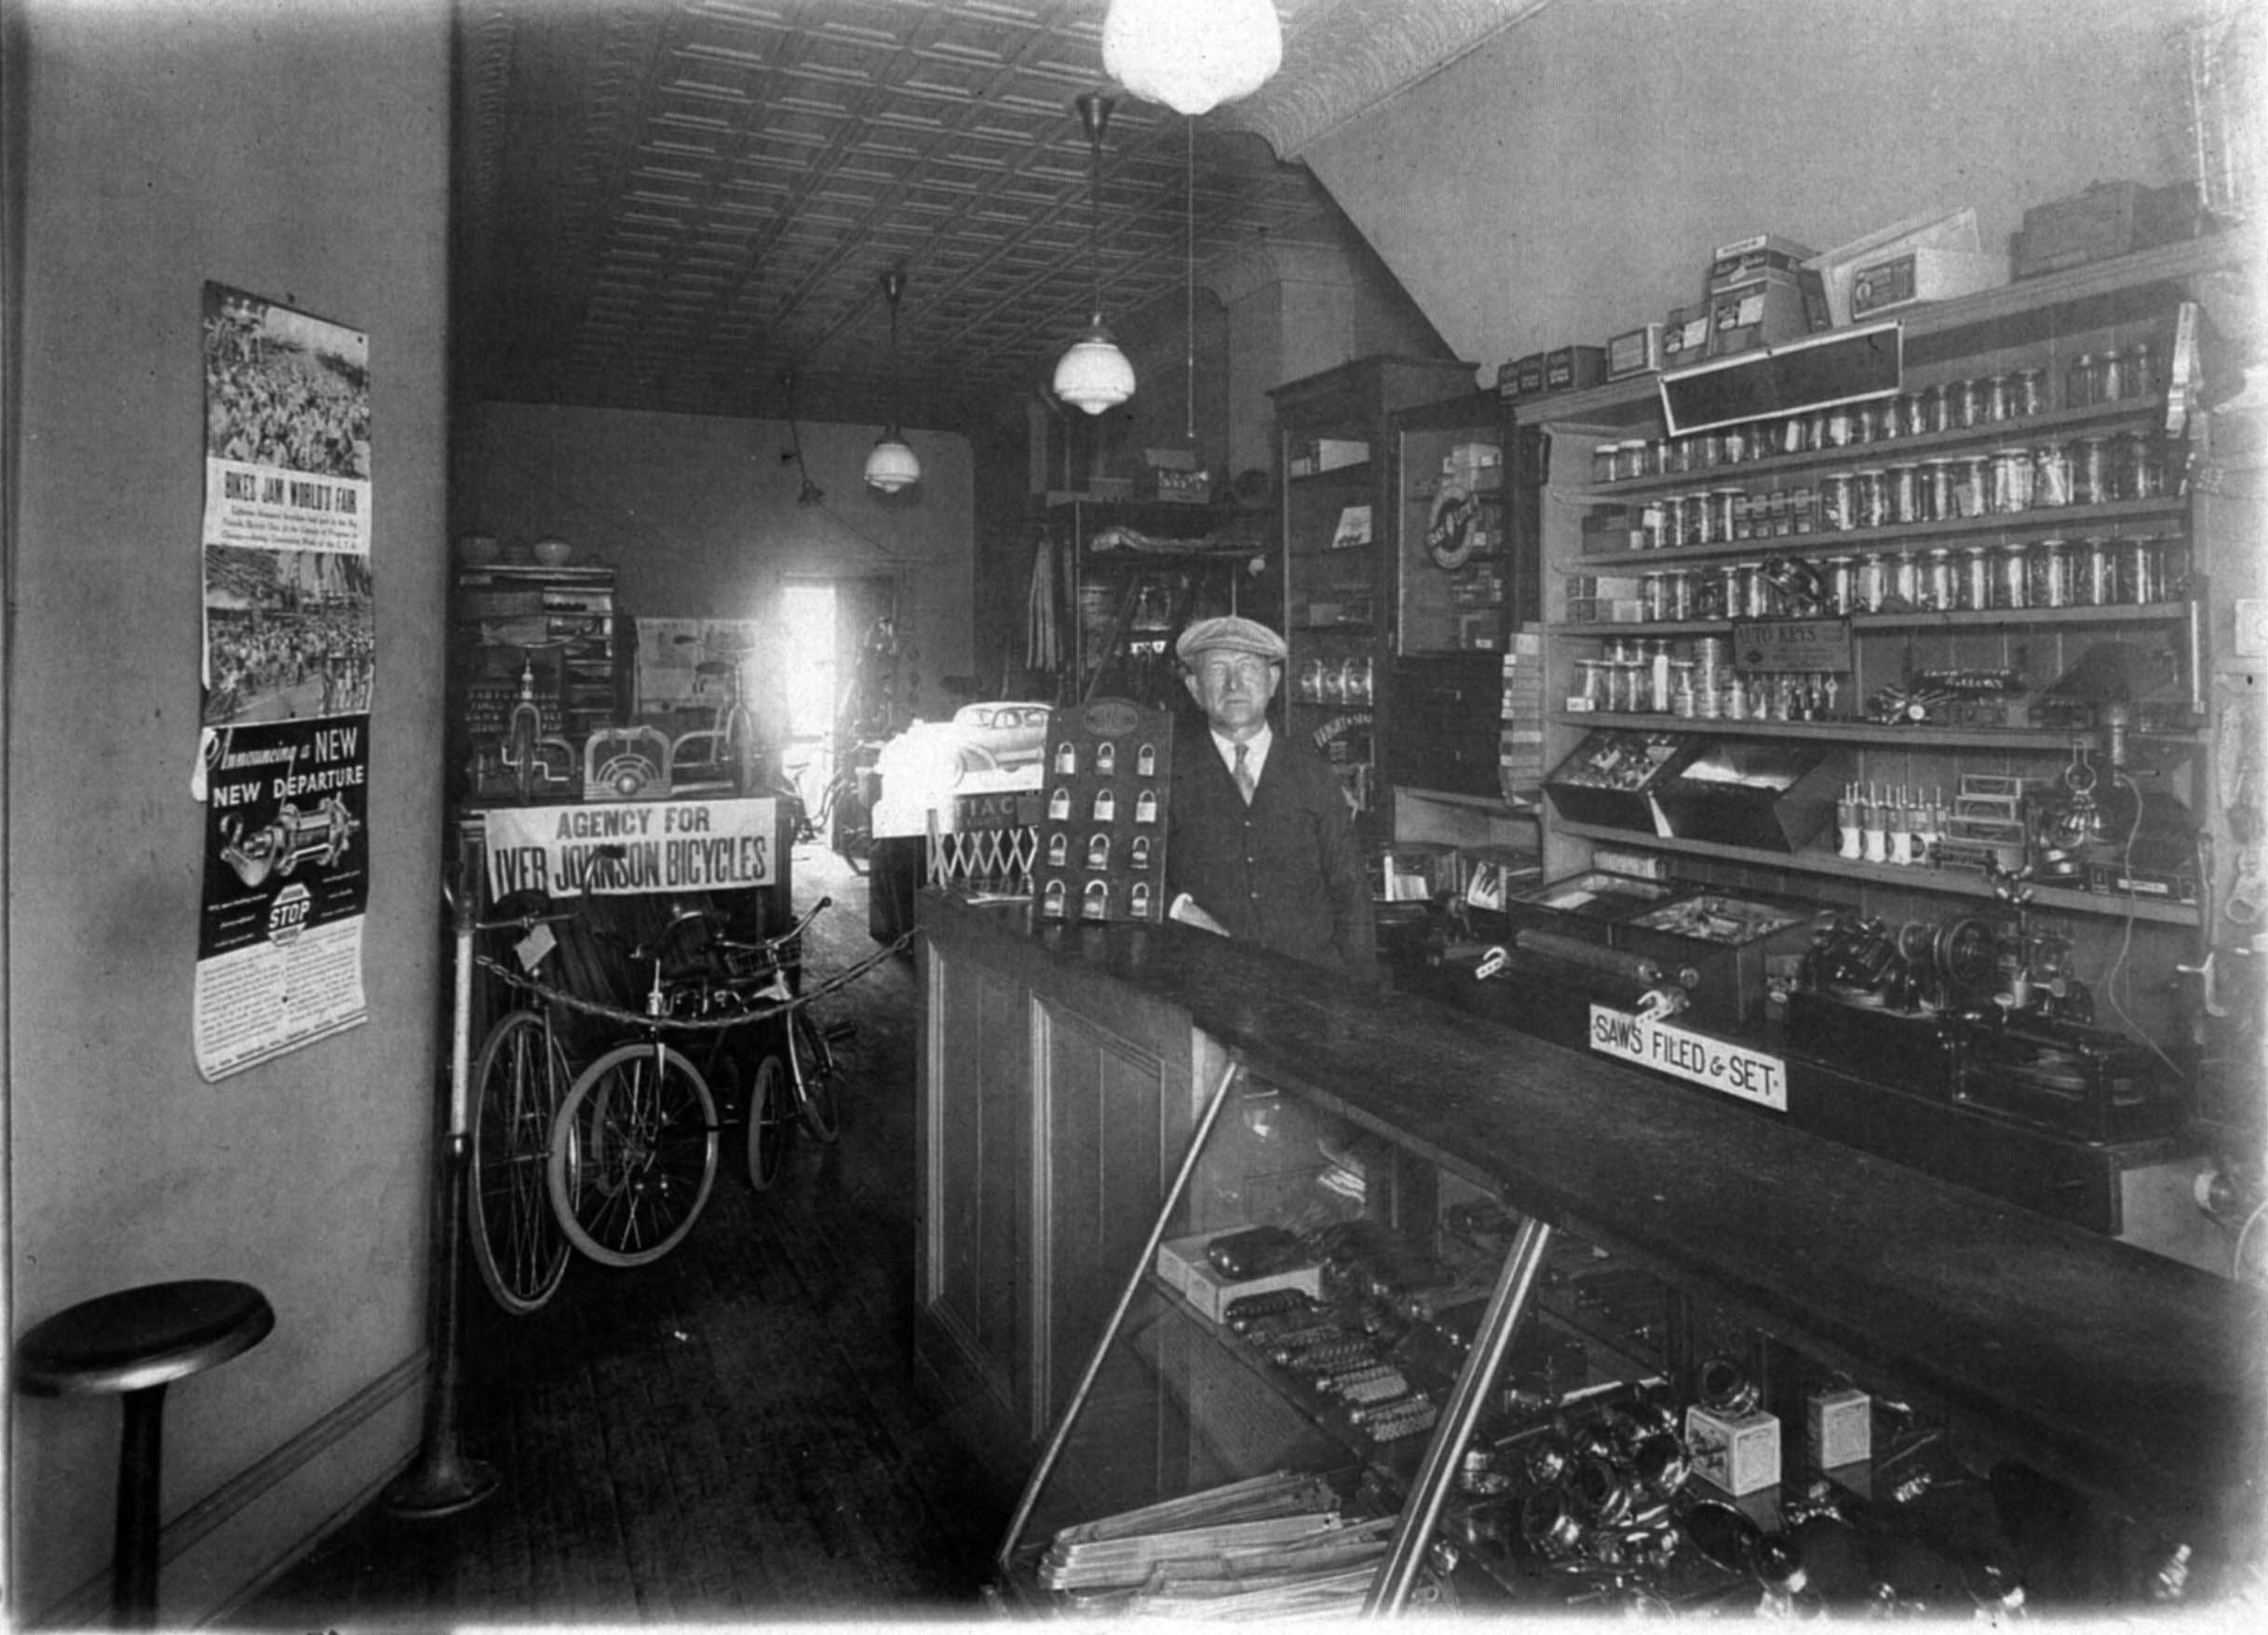 Robert Thomas Bike Shop in 1940